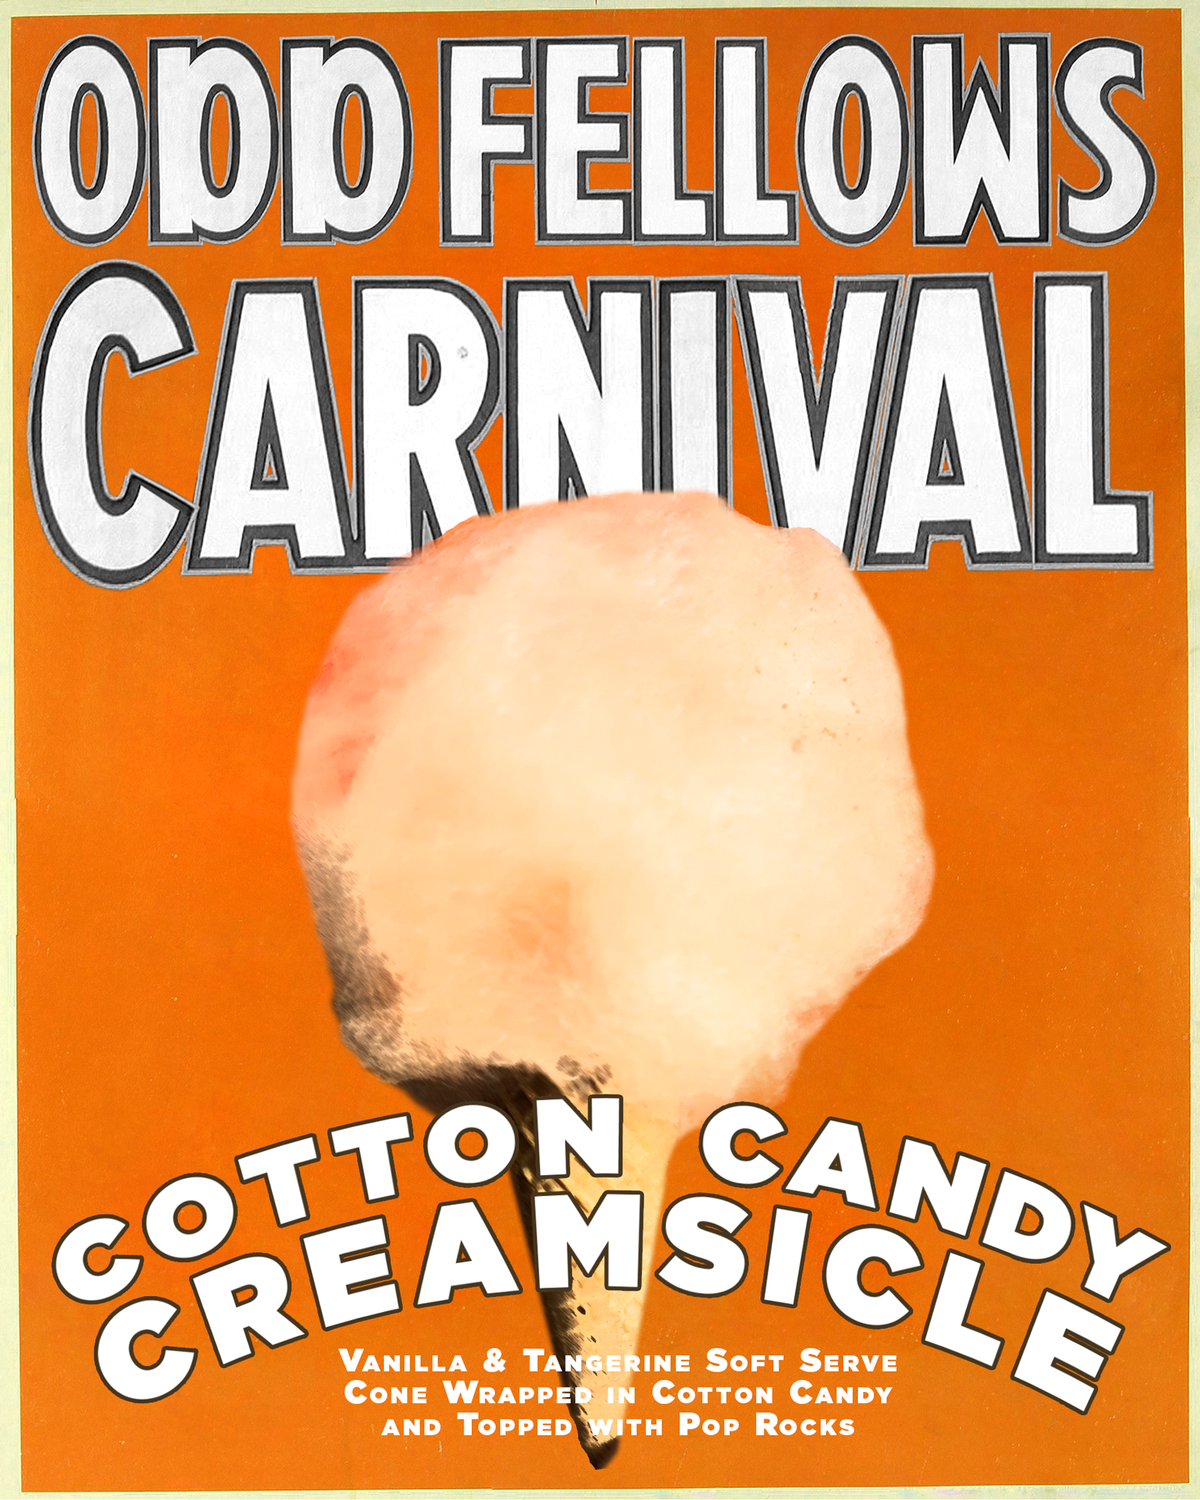 OddFellows Carnival nyc